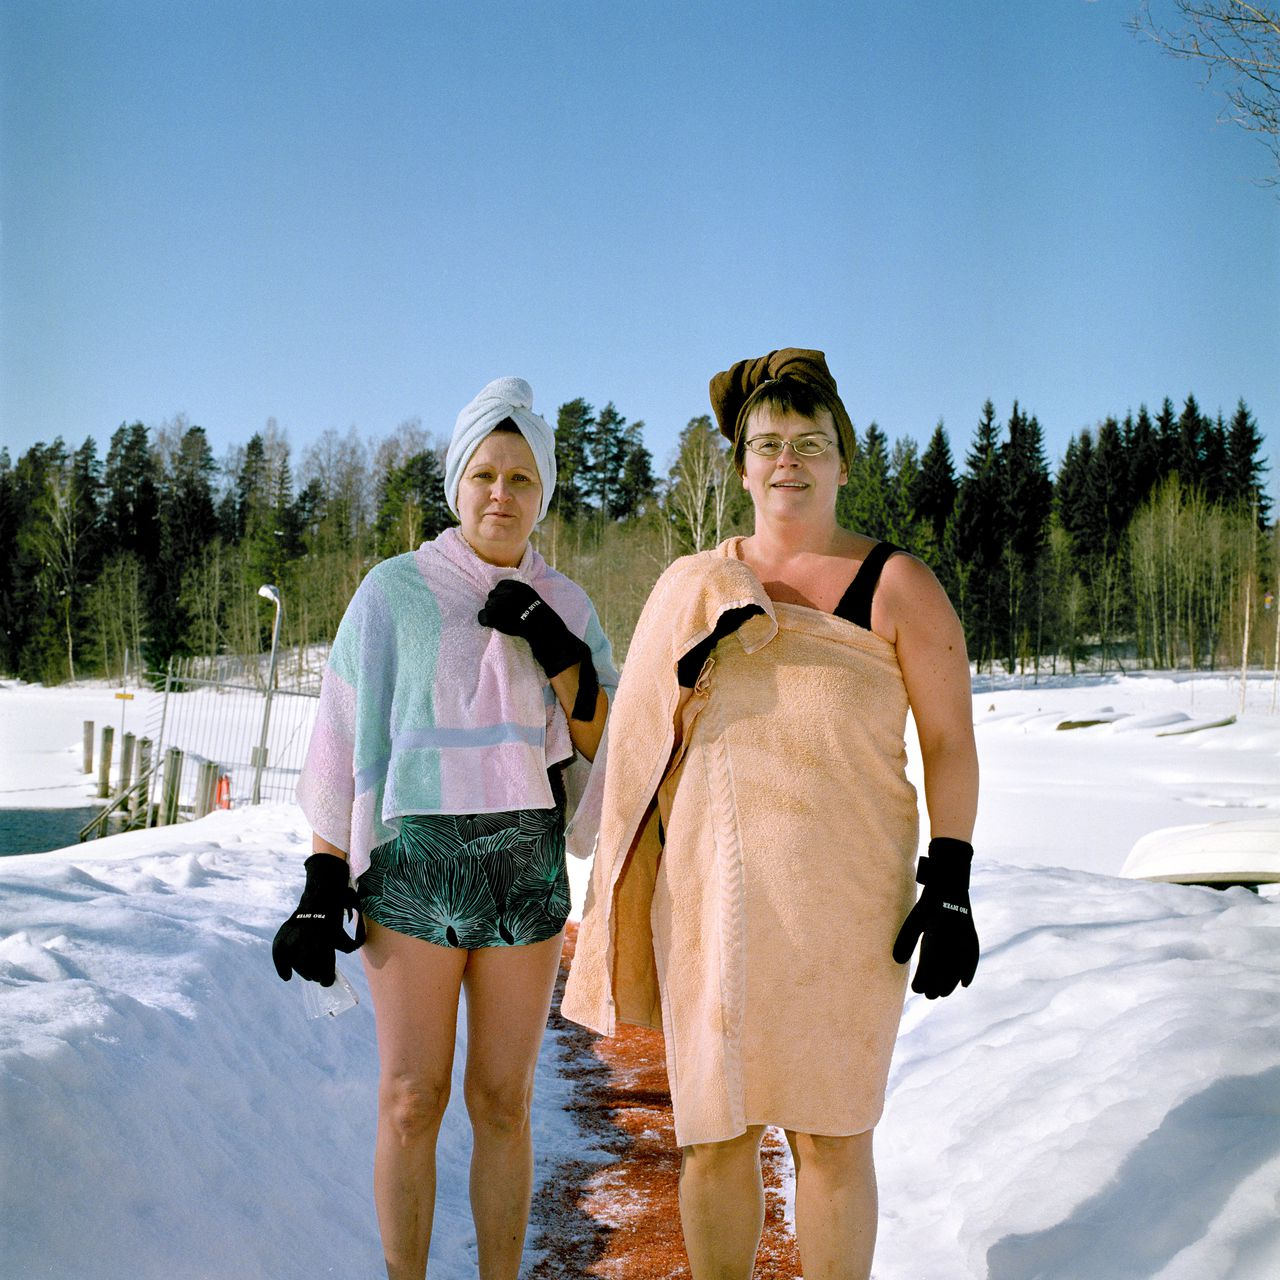 Tikka, Jyvaskyla, Finland. Jarvenjaa / Lakeice - During early 2010 Tessa Bunney was artist in residence at Jyvaskyla Printmaking Centre where she explored the landscape of the frozen lakes and associated leisure activities such as ice hole swimming, ice fishing and skiiing. Uimaranta / Swimming place - Tessa Bunney returned to Jyvaskyla 2 months later and continued to explore her interest in the landscape of the sauna and swimming places around the city and also in Kuopio. This residency was part of Connections North, International Residency Exchange Project organised by Art Connections and funded by Arts Council England. © Tessa Bunney / eyevine Contact eyevine for more information about using this image: T: +44 (0) 20 8709 8709 E: info@eyevine.com http:///www.eyevine.com Ice swimming in Finland - deel van serie (12 foto´s). *** Local Caption *** 00745306